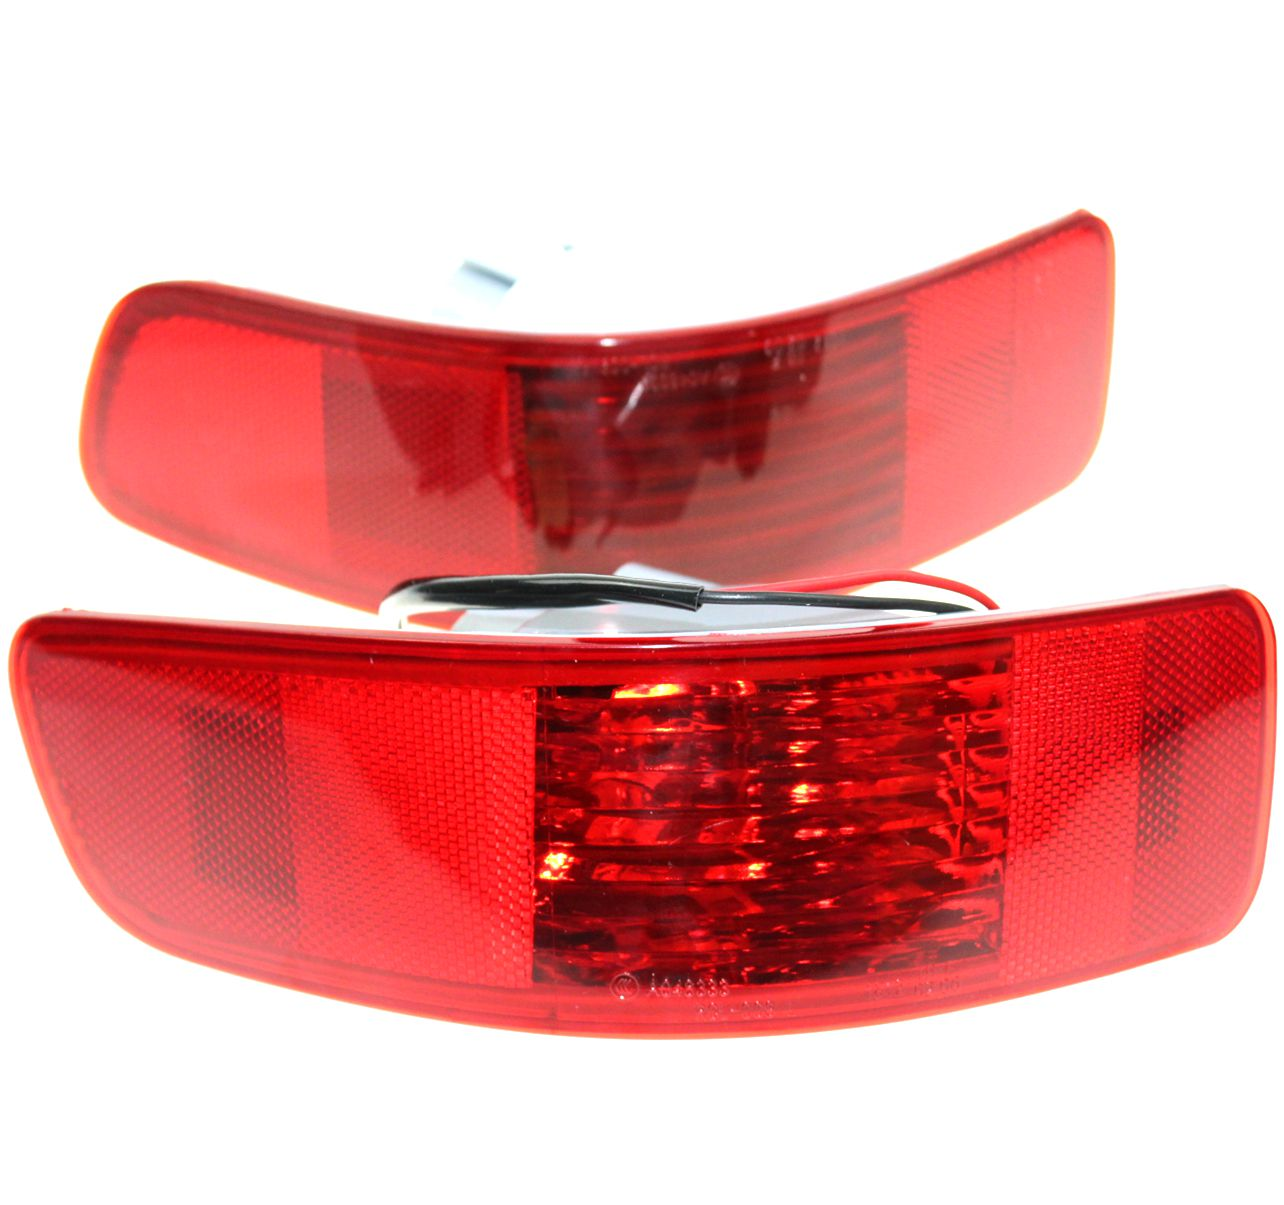 LARATH Pair Rear Bumper Right Left Tail Fog Light Lamp Fit for Mitsubishi Outlander PEUGEOT 4007 2007-2012 CITROEN C-Crosser beler rear left side fog light bumper lamp reflector sl693 lh fit for mitsubishi outlander 2007 2008 2009 2010 2011 2012 2013